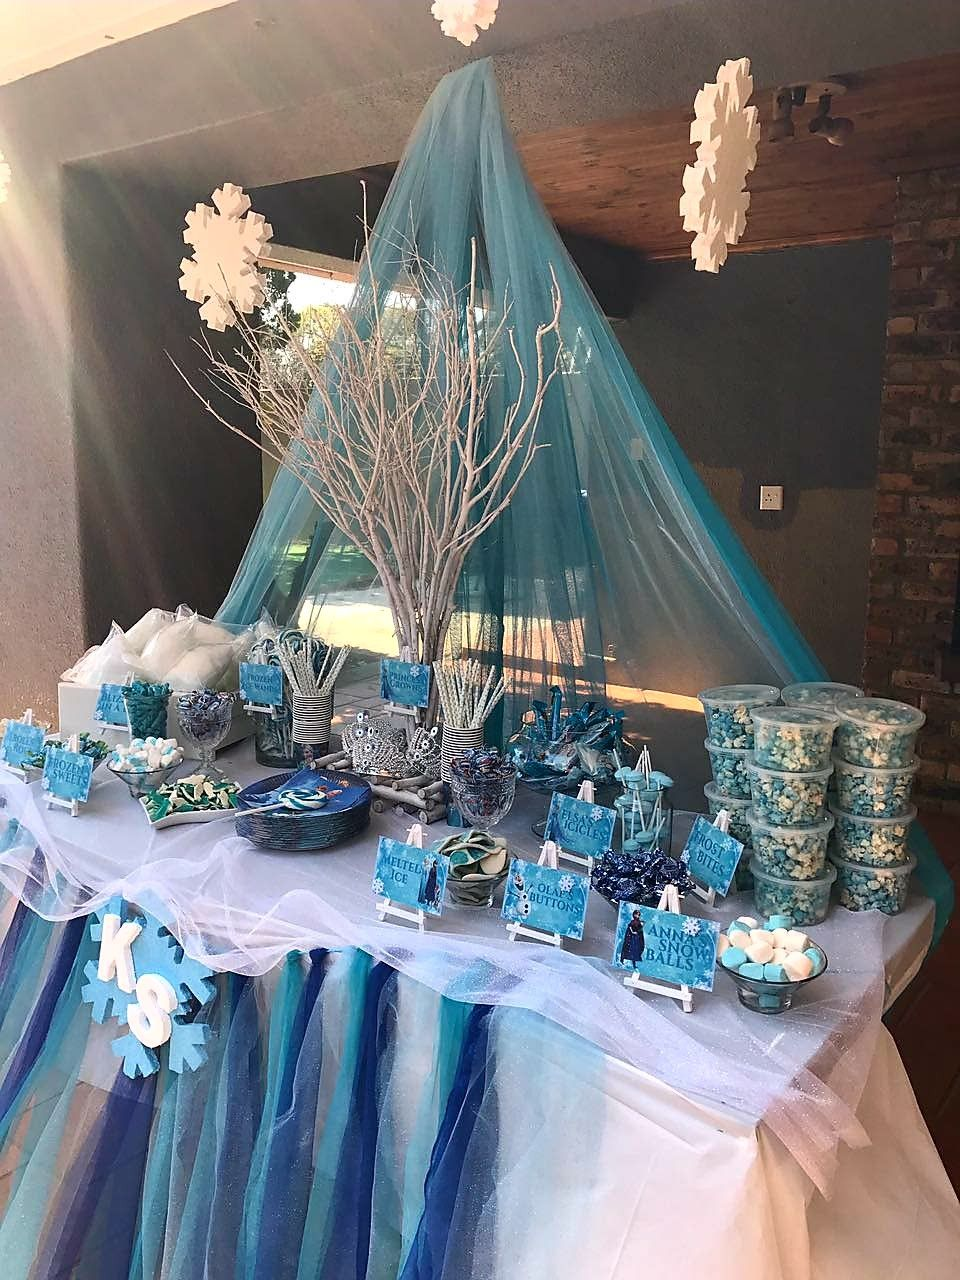 Frozen Themed Birthday Party Table Decor Candy Table Cumpleanos Frozen Fiesta Frozen Frozen